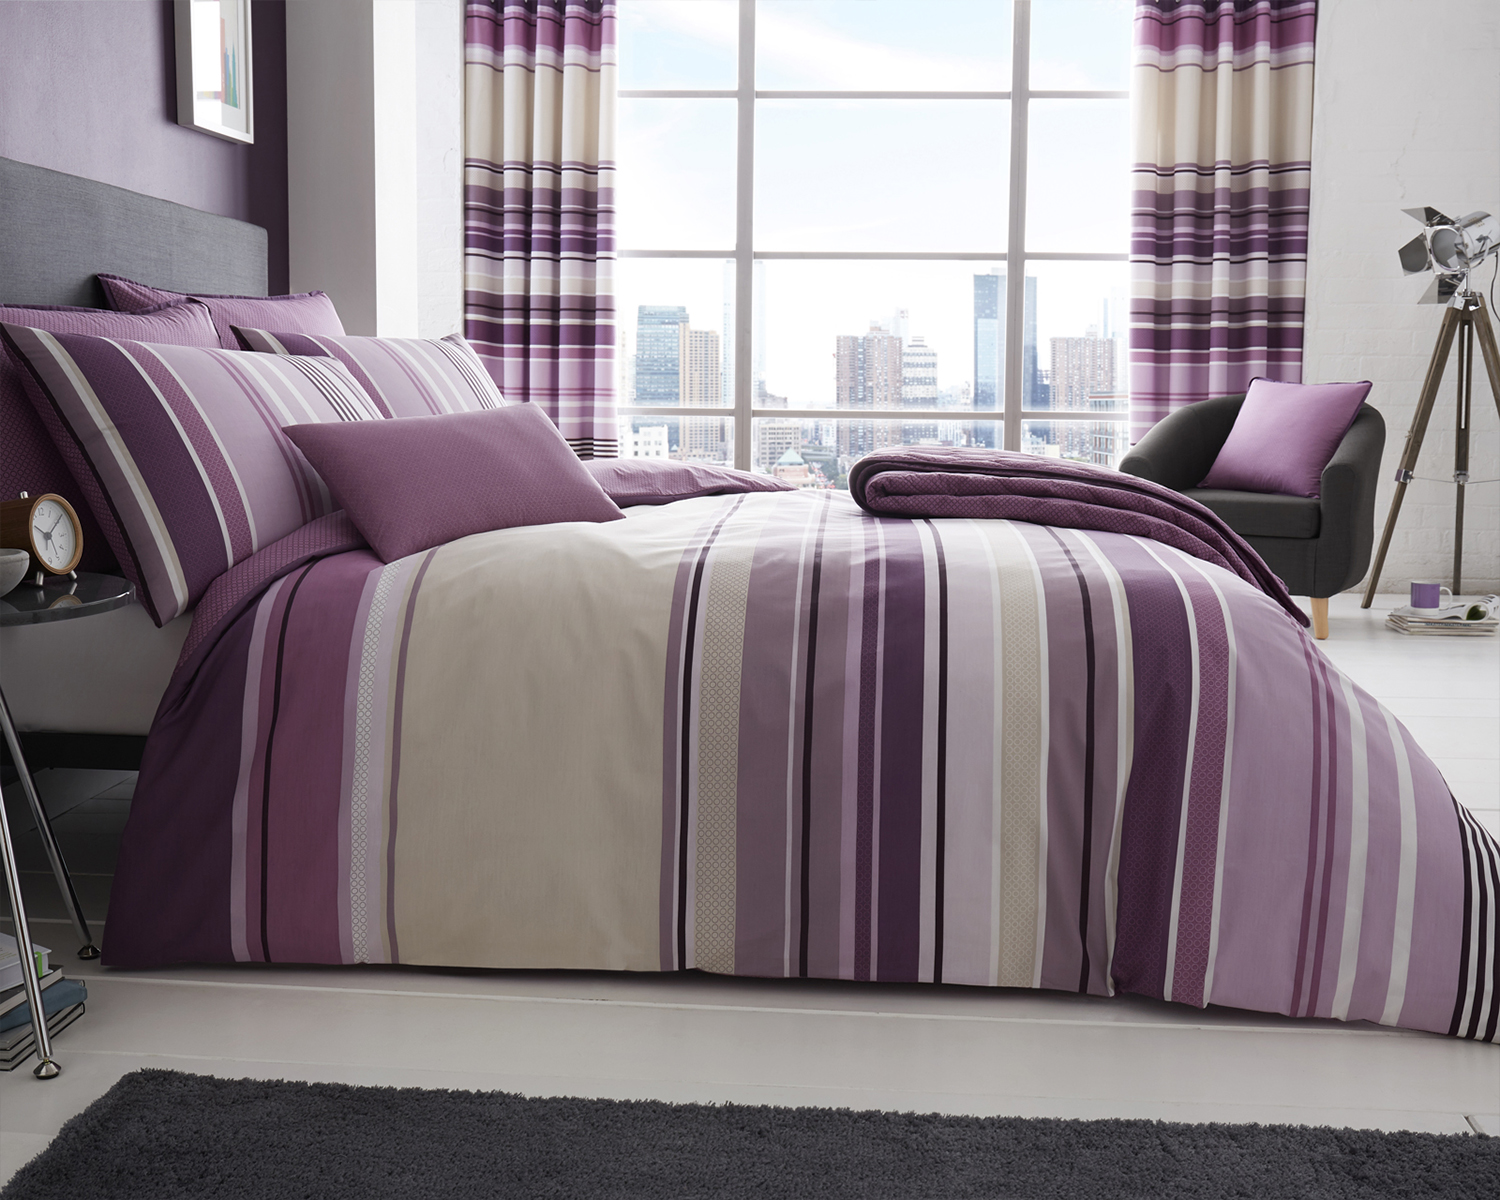 Ashcroft Stripe Collection Bedding Set in Mauve